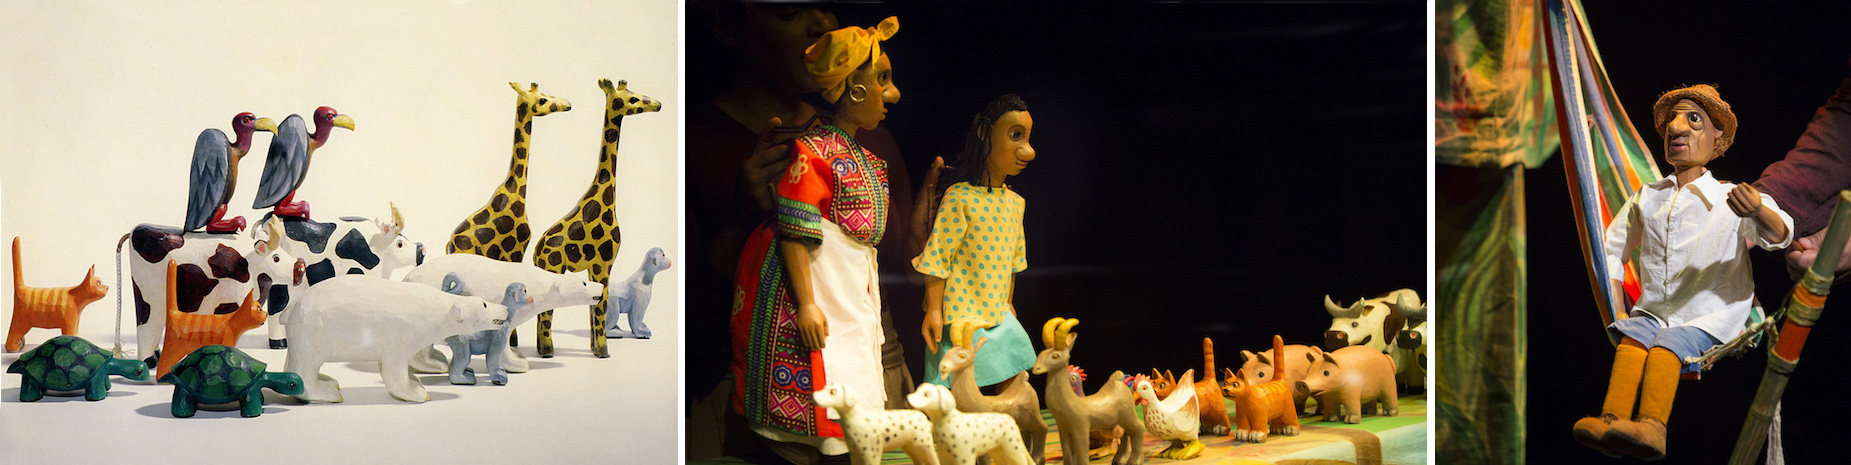 Go Noah Go' 2017 Little Angel Theatre - puppets carved and painted by Jan Zalud, costumes by Gerry Spiller.